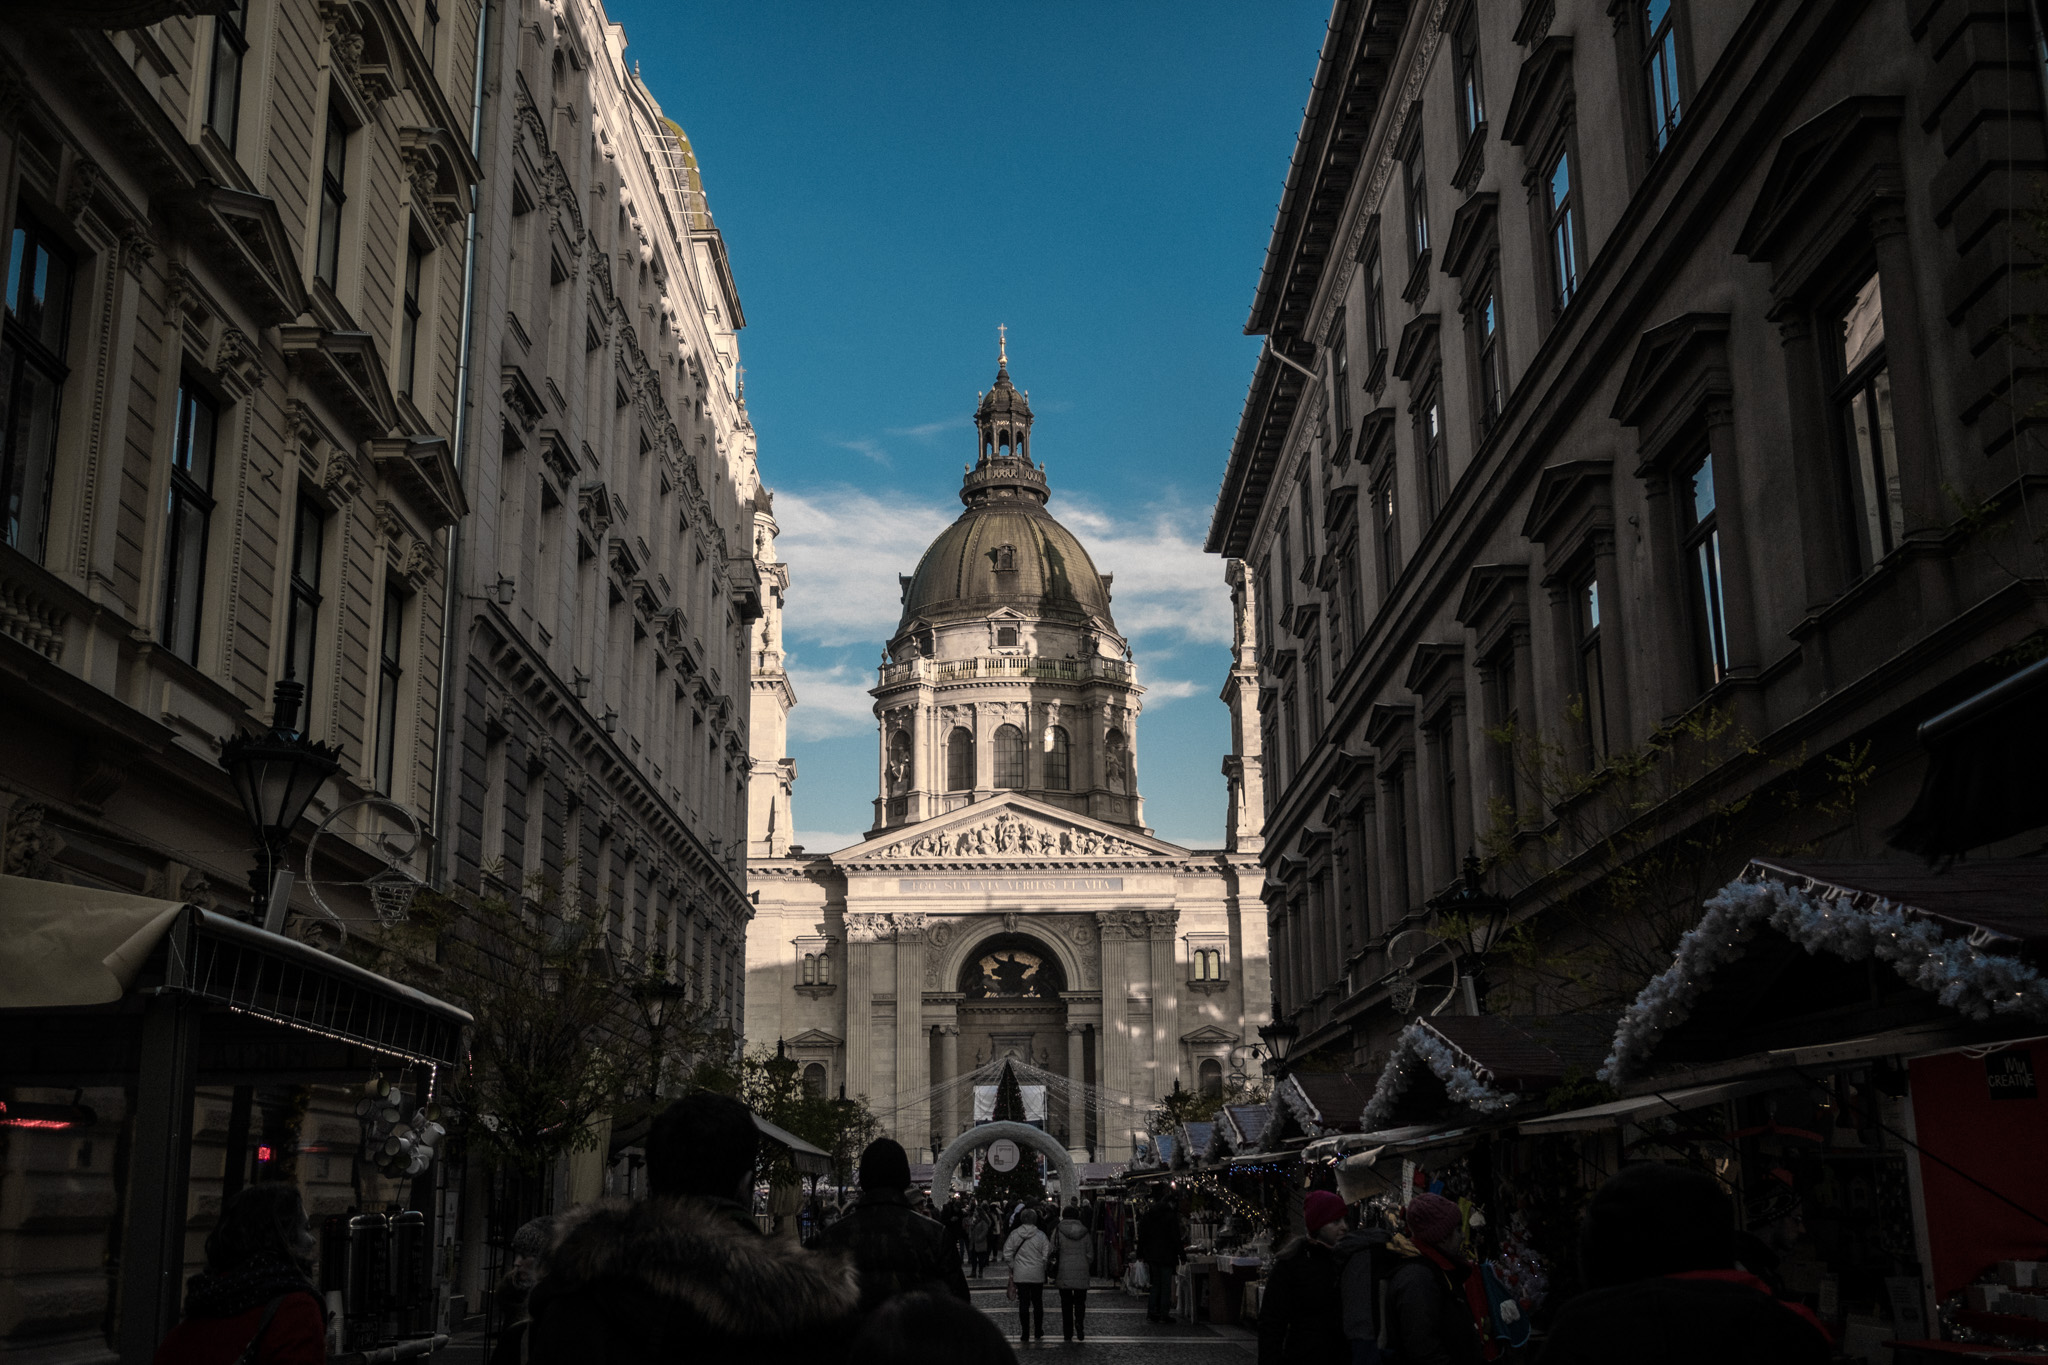 20161213144621_Budapest_by_EjunLow_0133.jpg